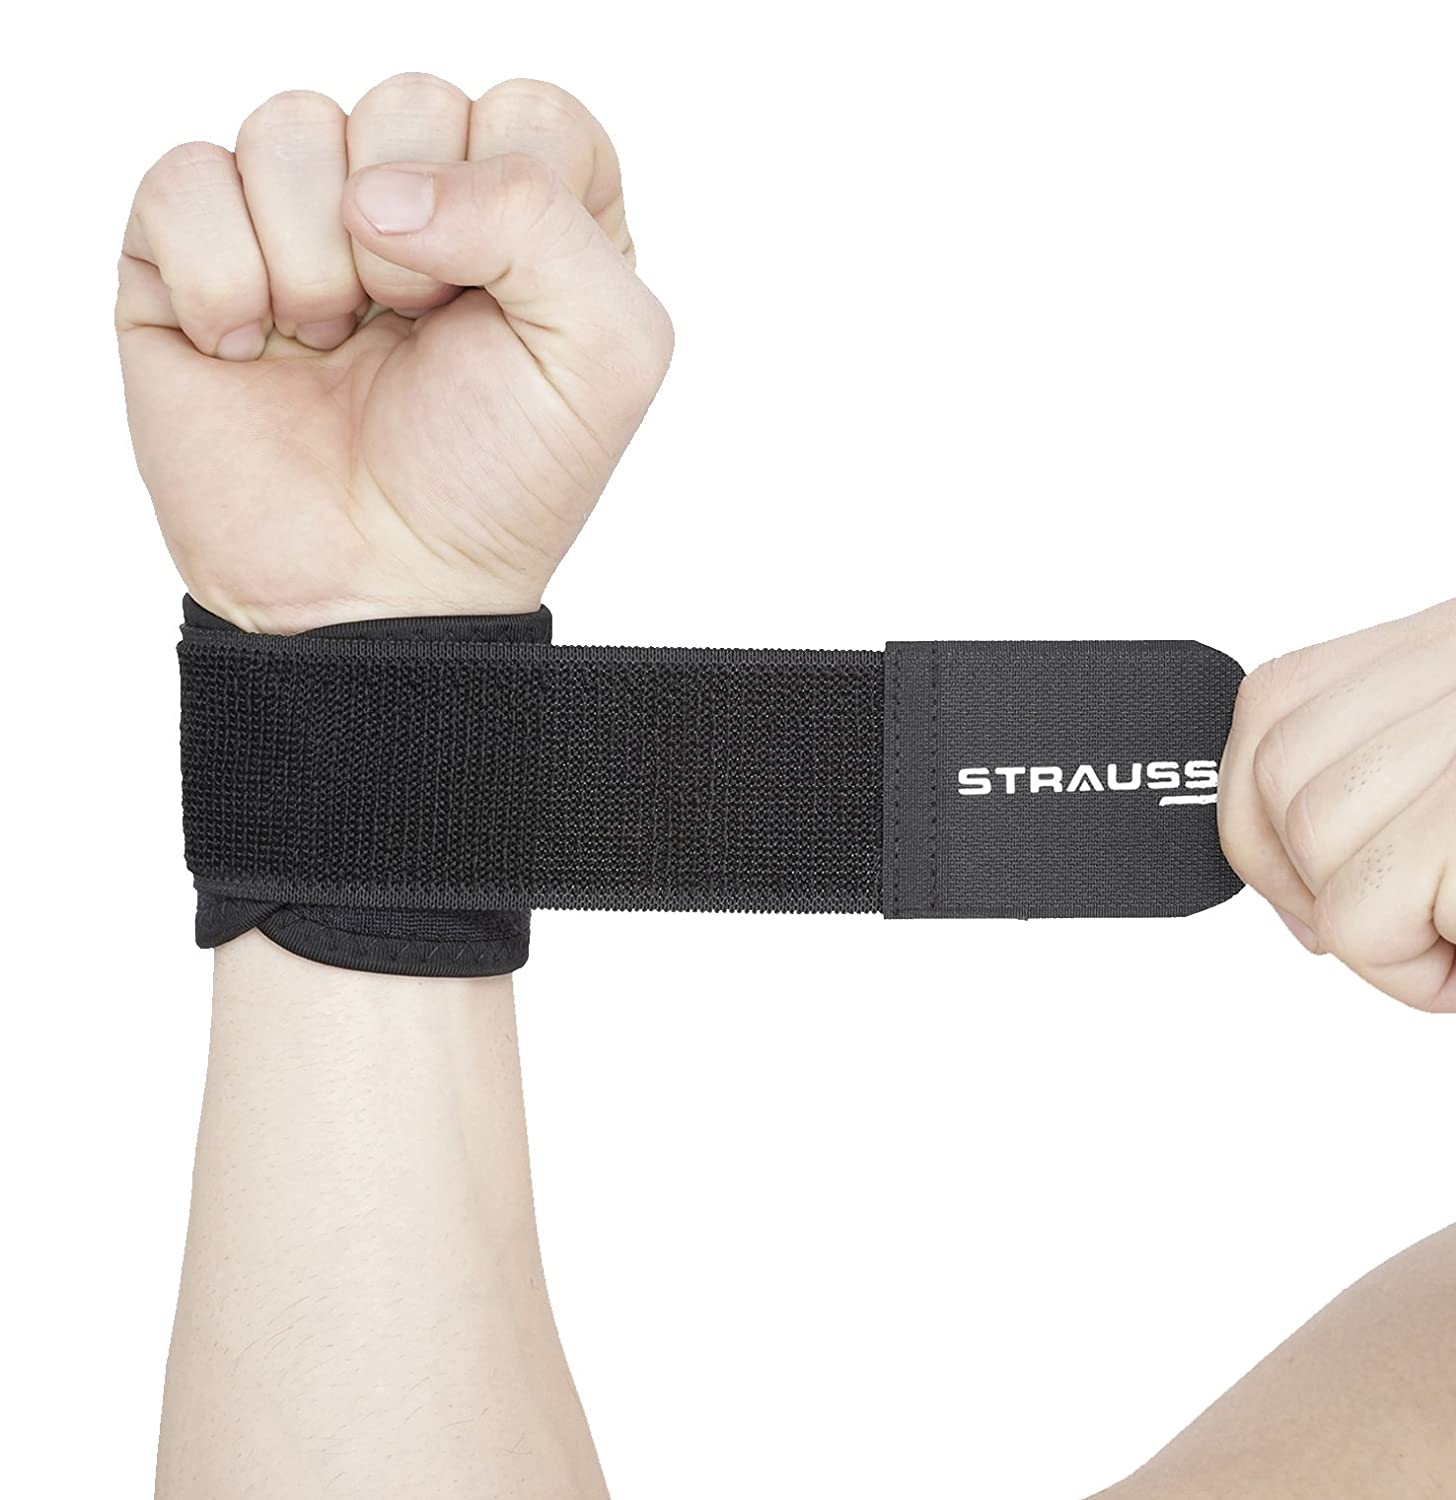 Upto 60% Off On Fitness Gear By Amazon | Strauss Wrist Support, Free Size (Black) @ Rs.162